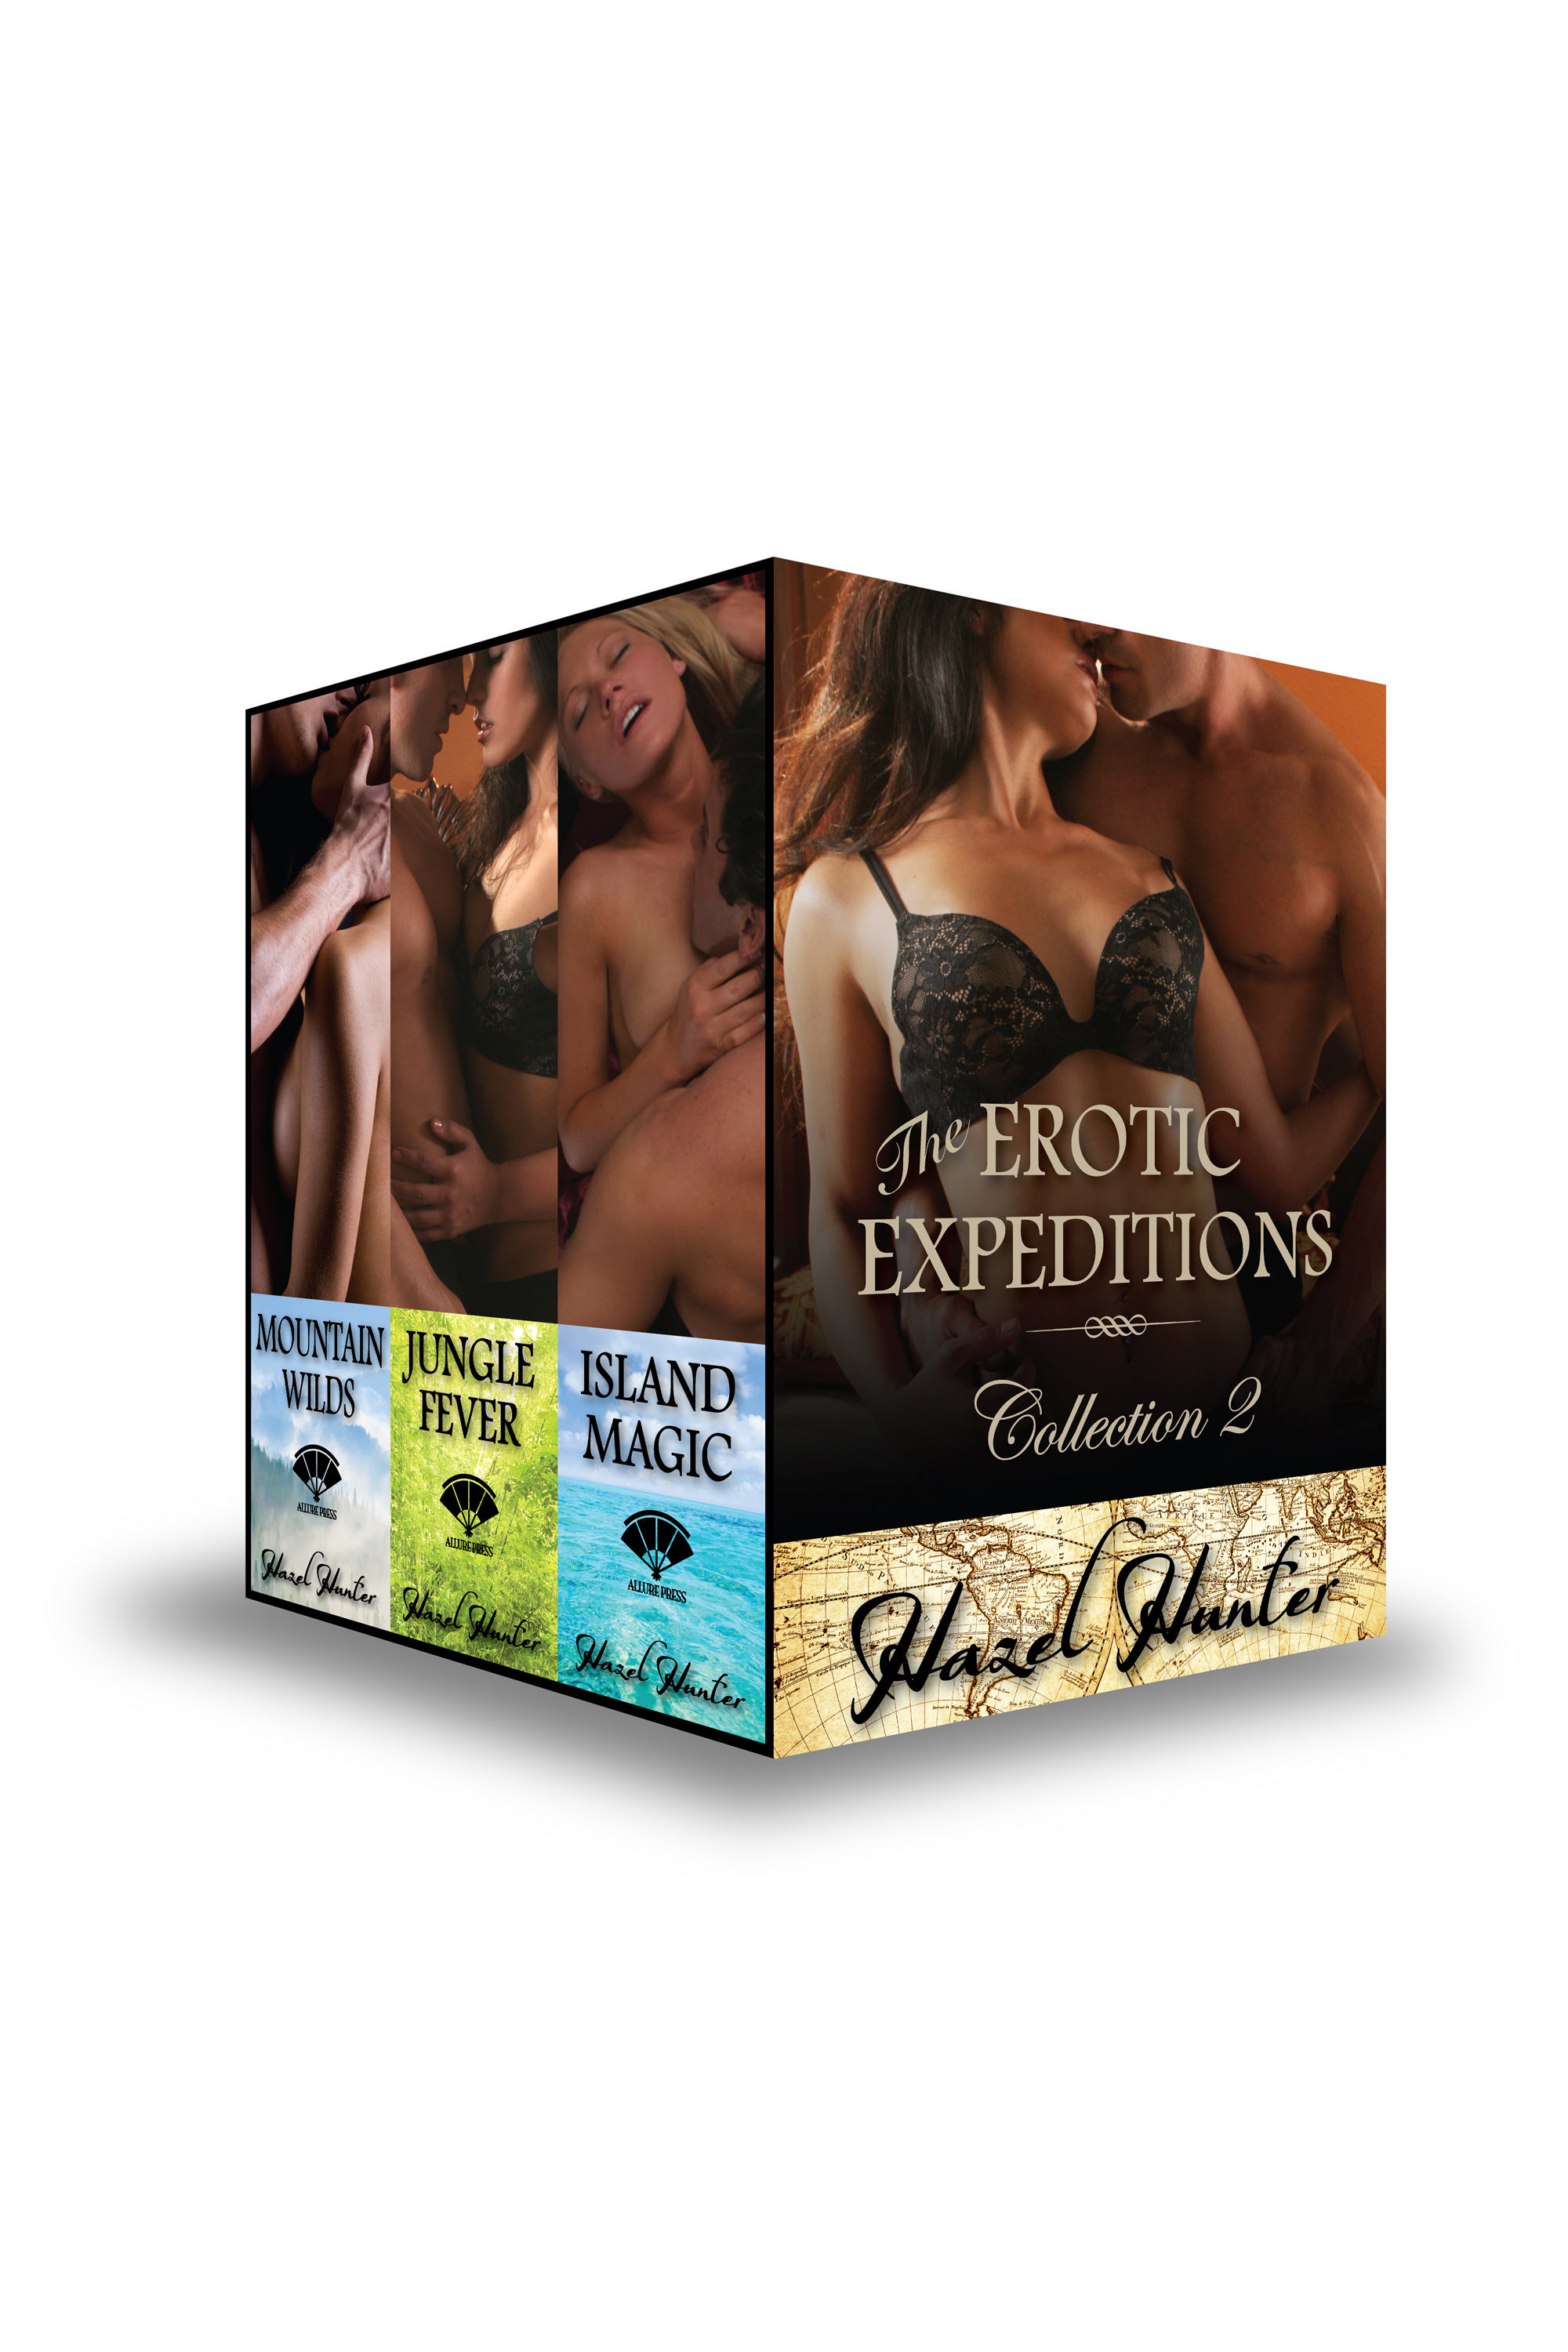 The Erotic Expeditions - Collection 2